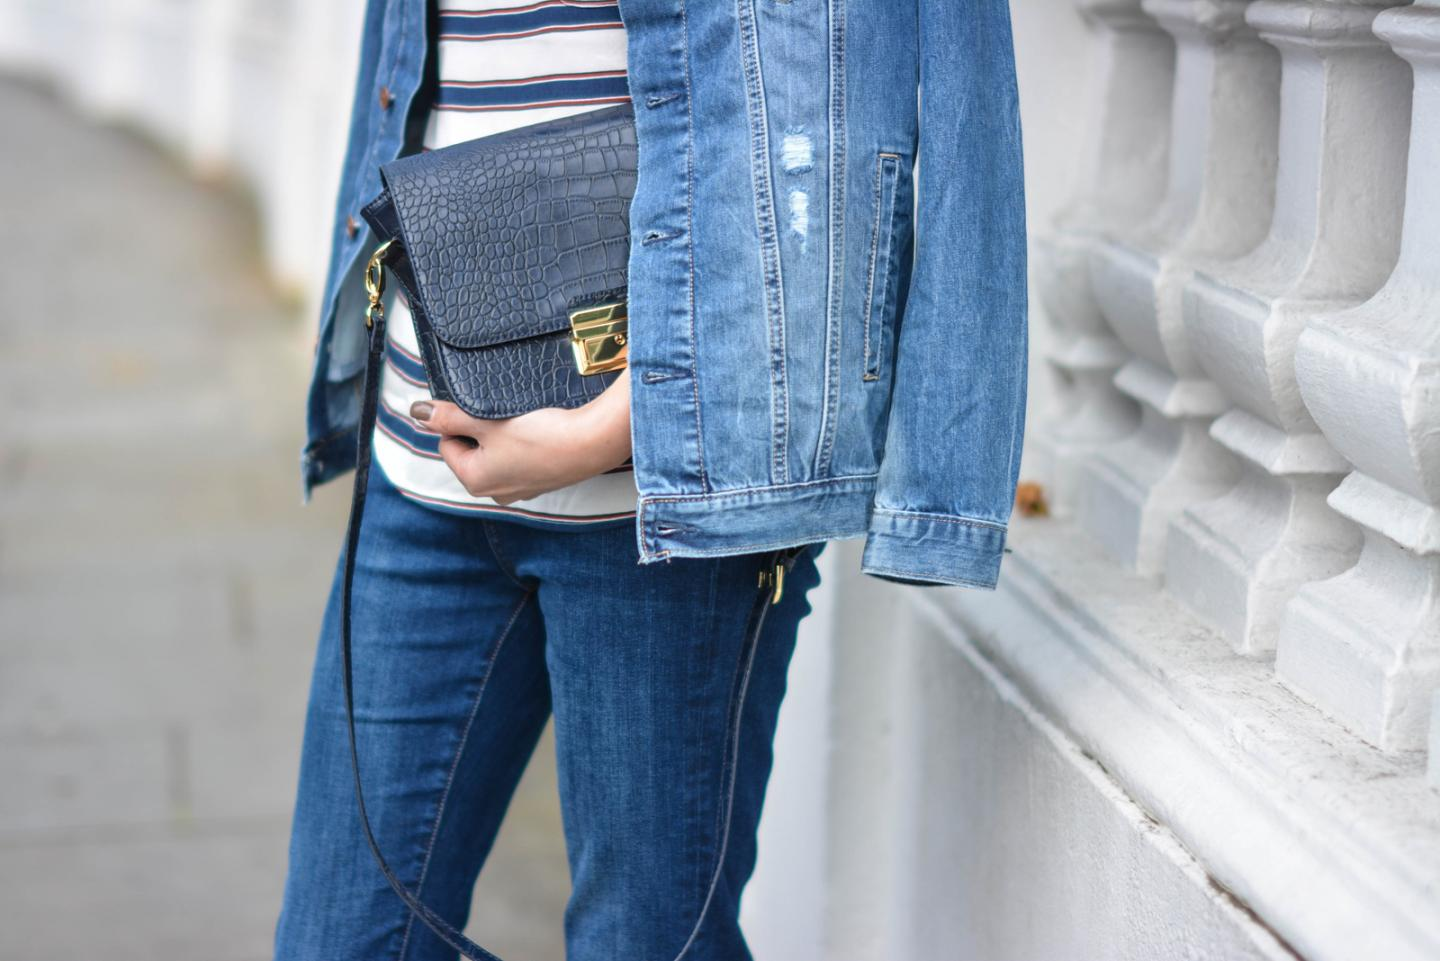 EJSTYLE - Emma Hill, Double denim, Spring outfit, flare jeans, stripe H&M top, H&M denim jacket, navy moc croc bag forever 21, celine style classic bag, OOTD